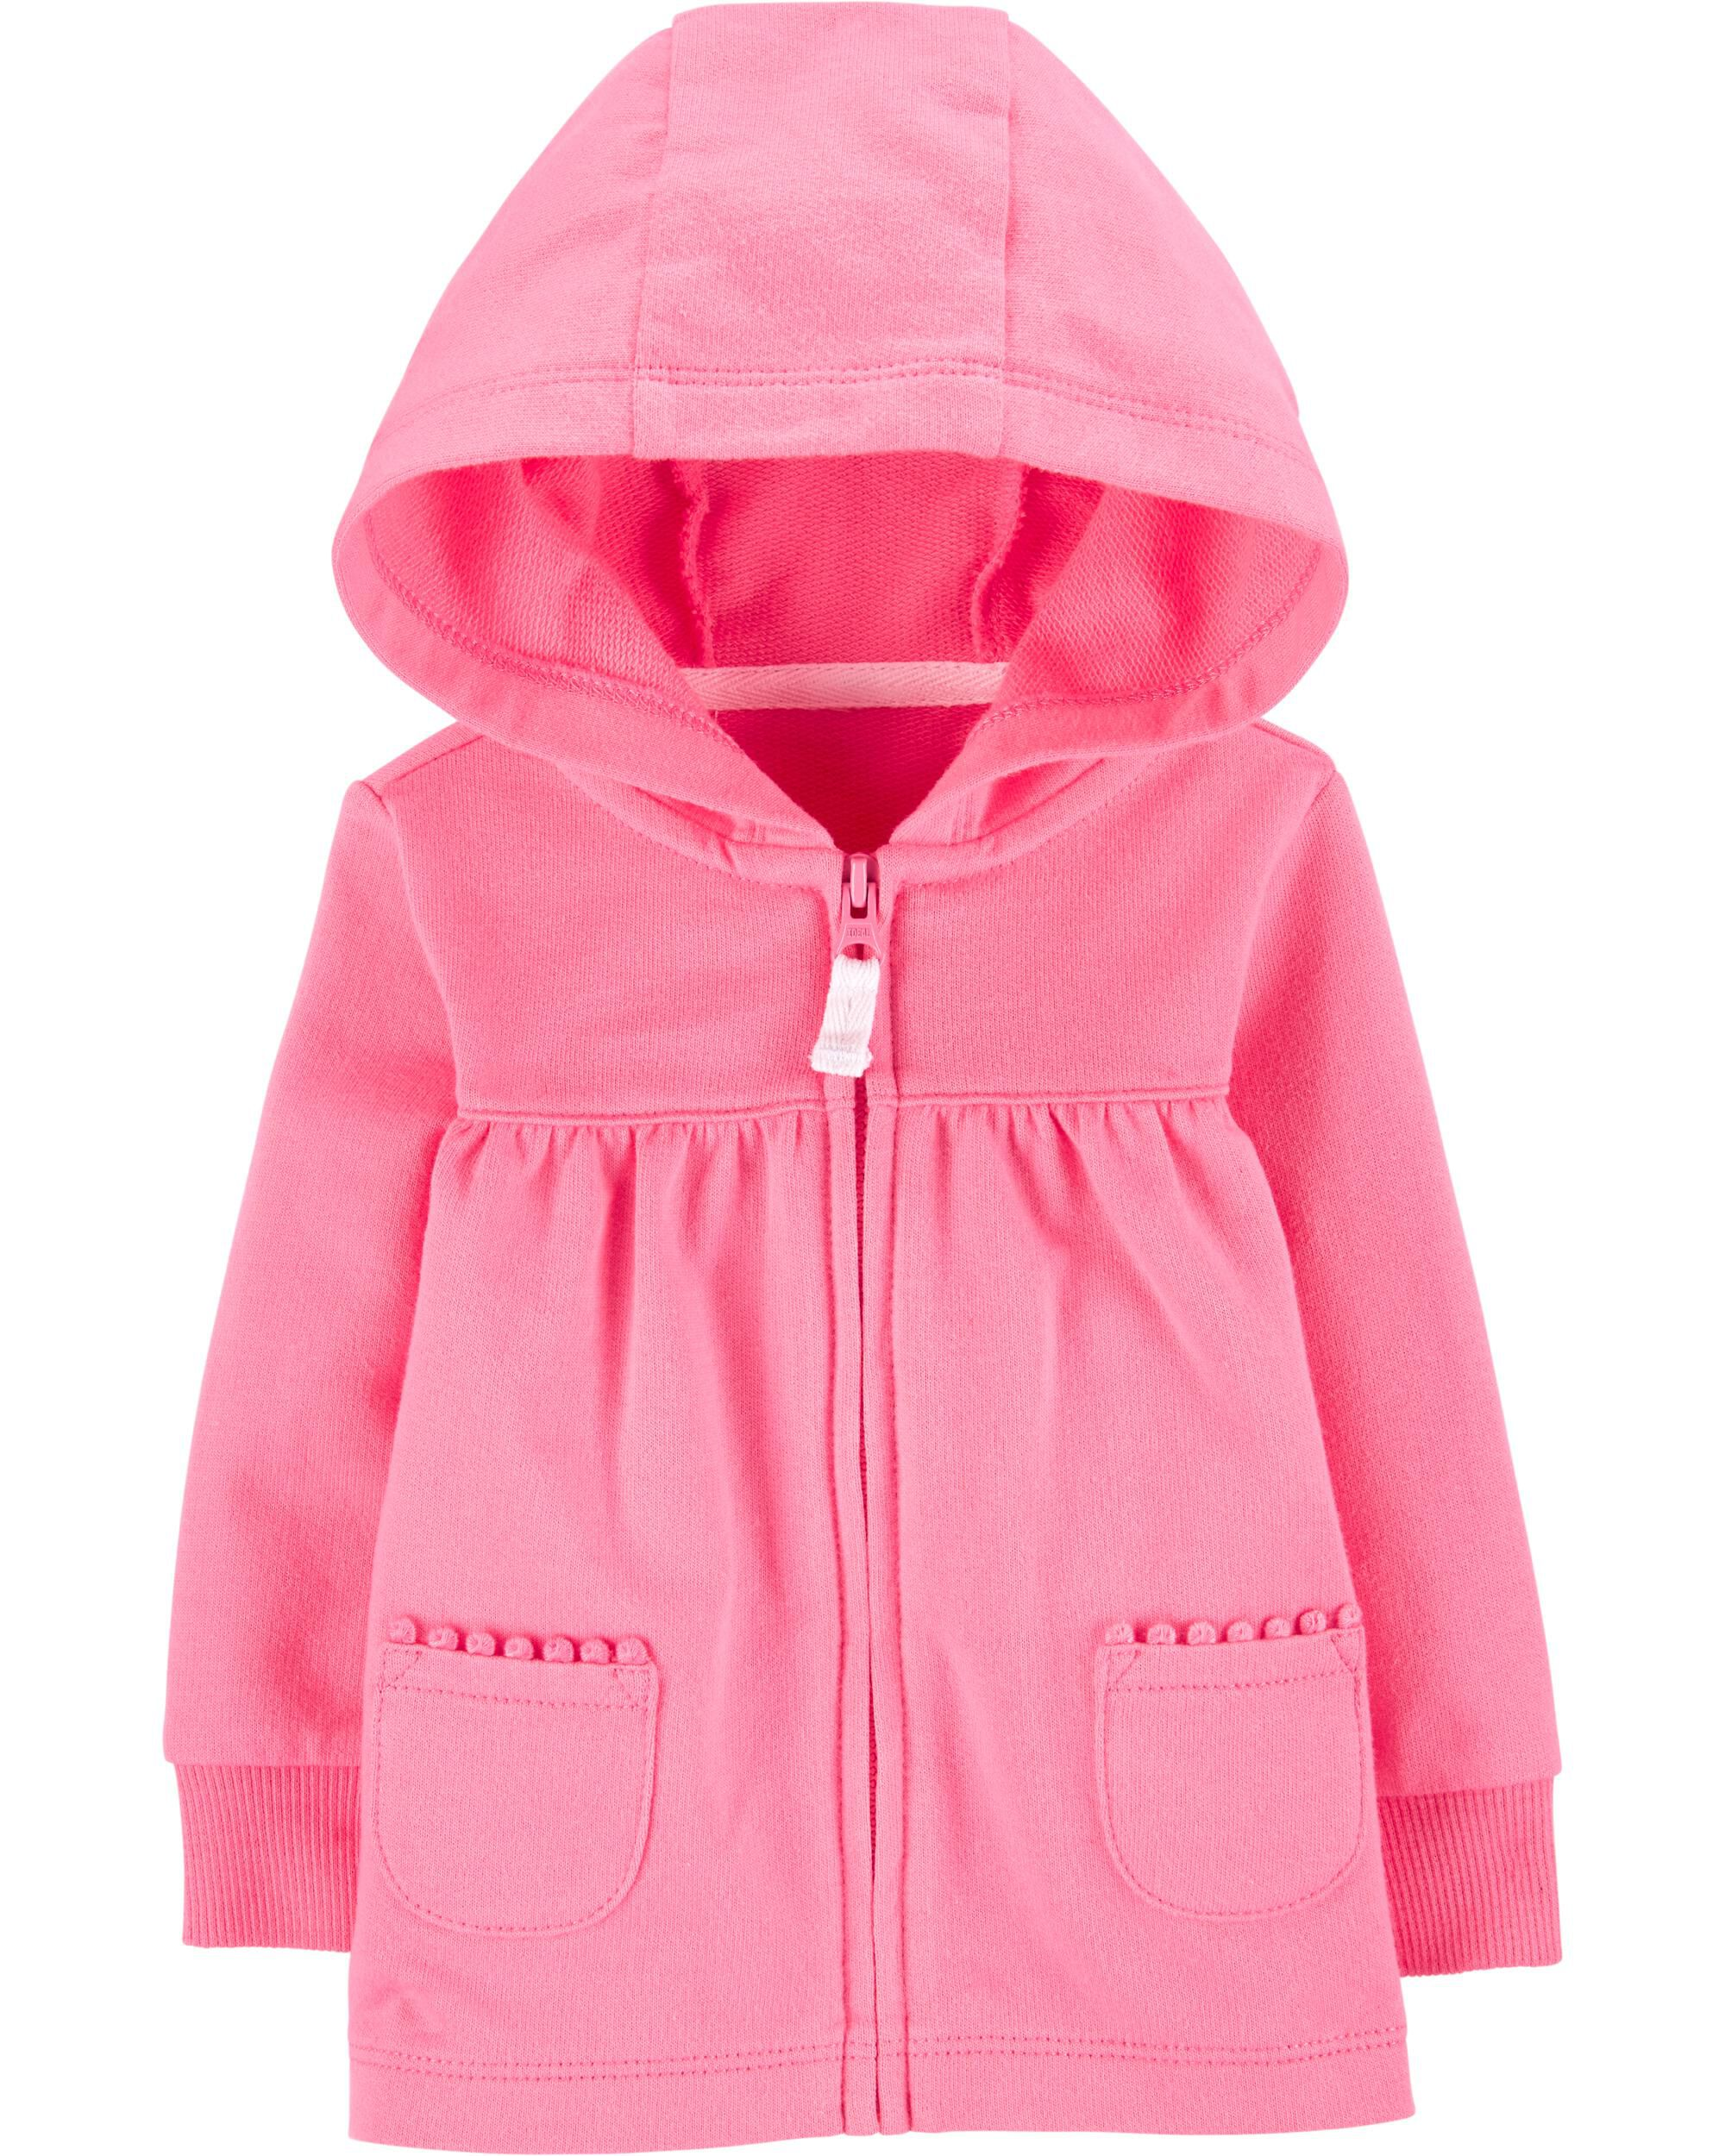 *CLEARANCE* Zip-Up French Terry Hoodie